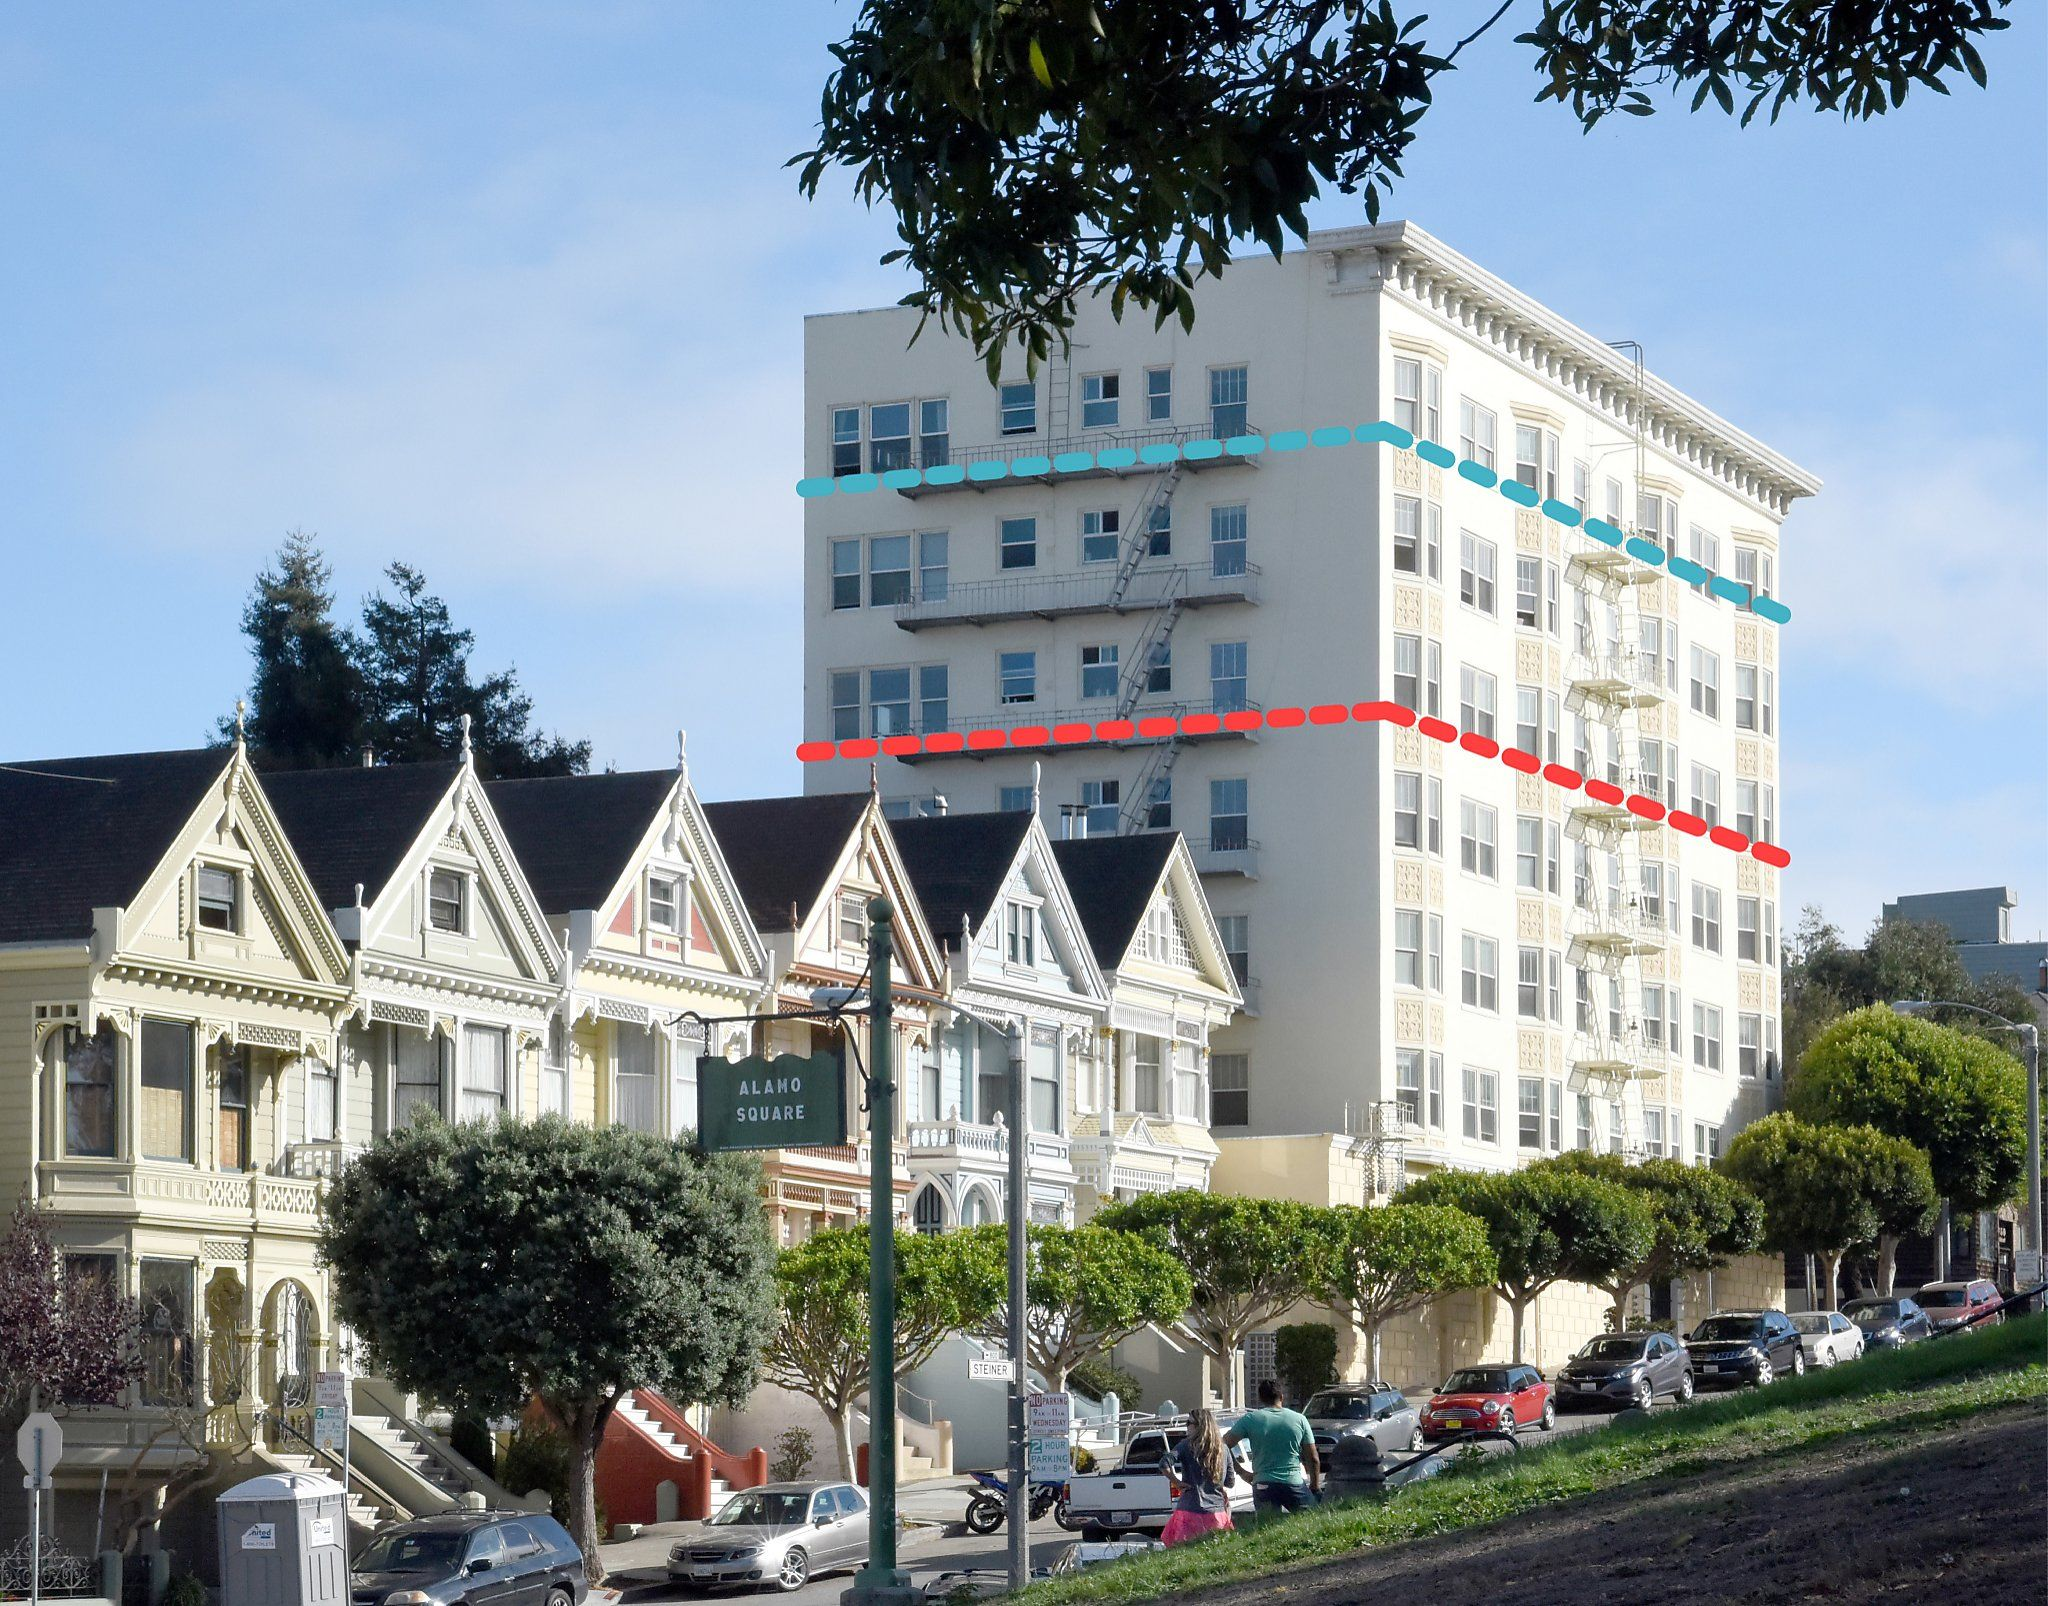 S F Explores Housing Density Bonus If Affordable Units Added City Planner Pacific Heights The Neighbourhood